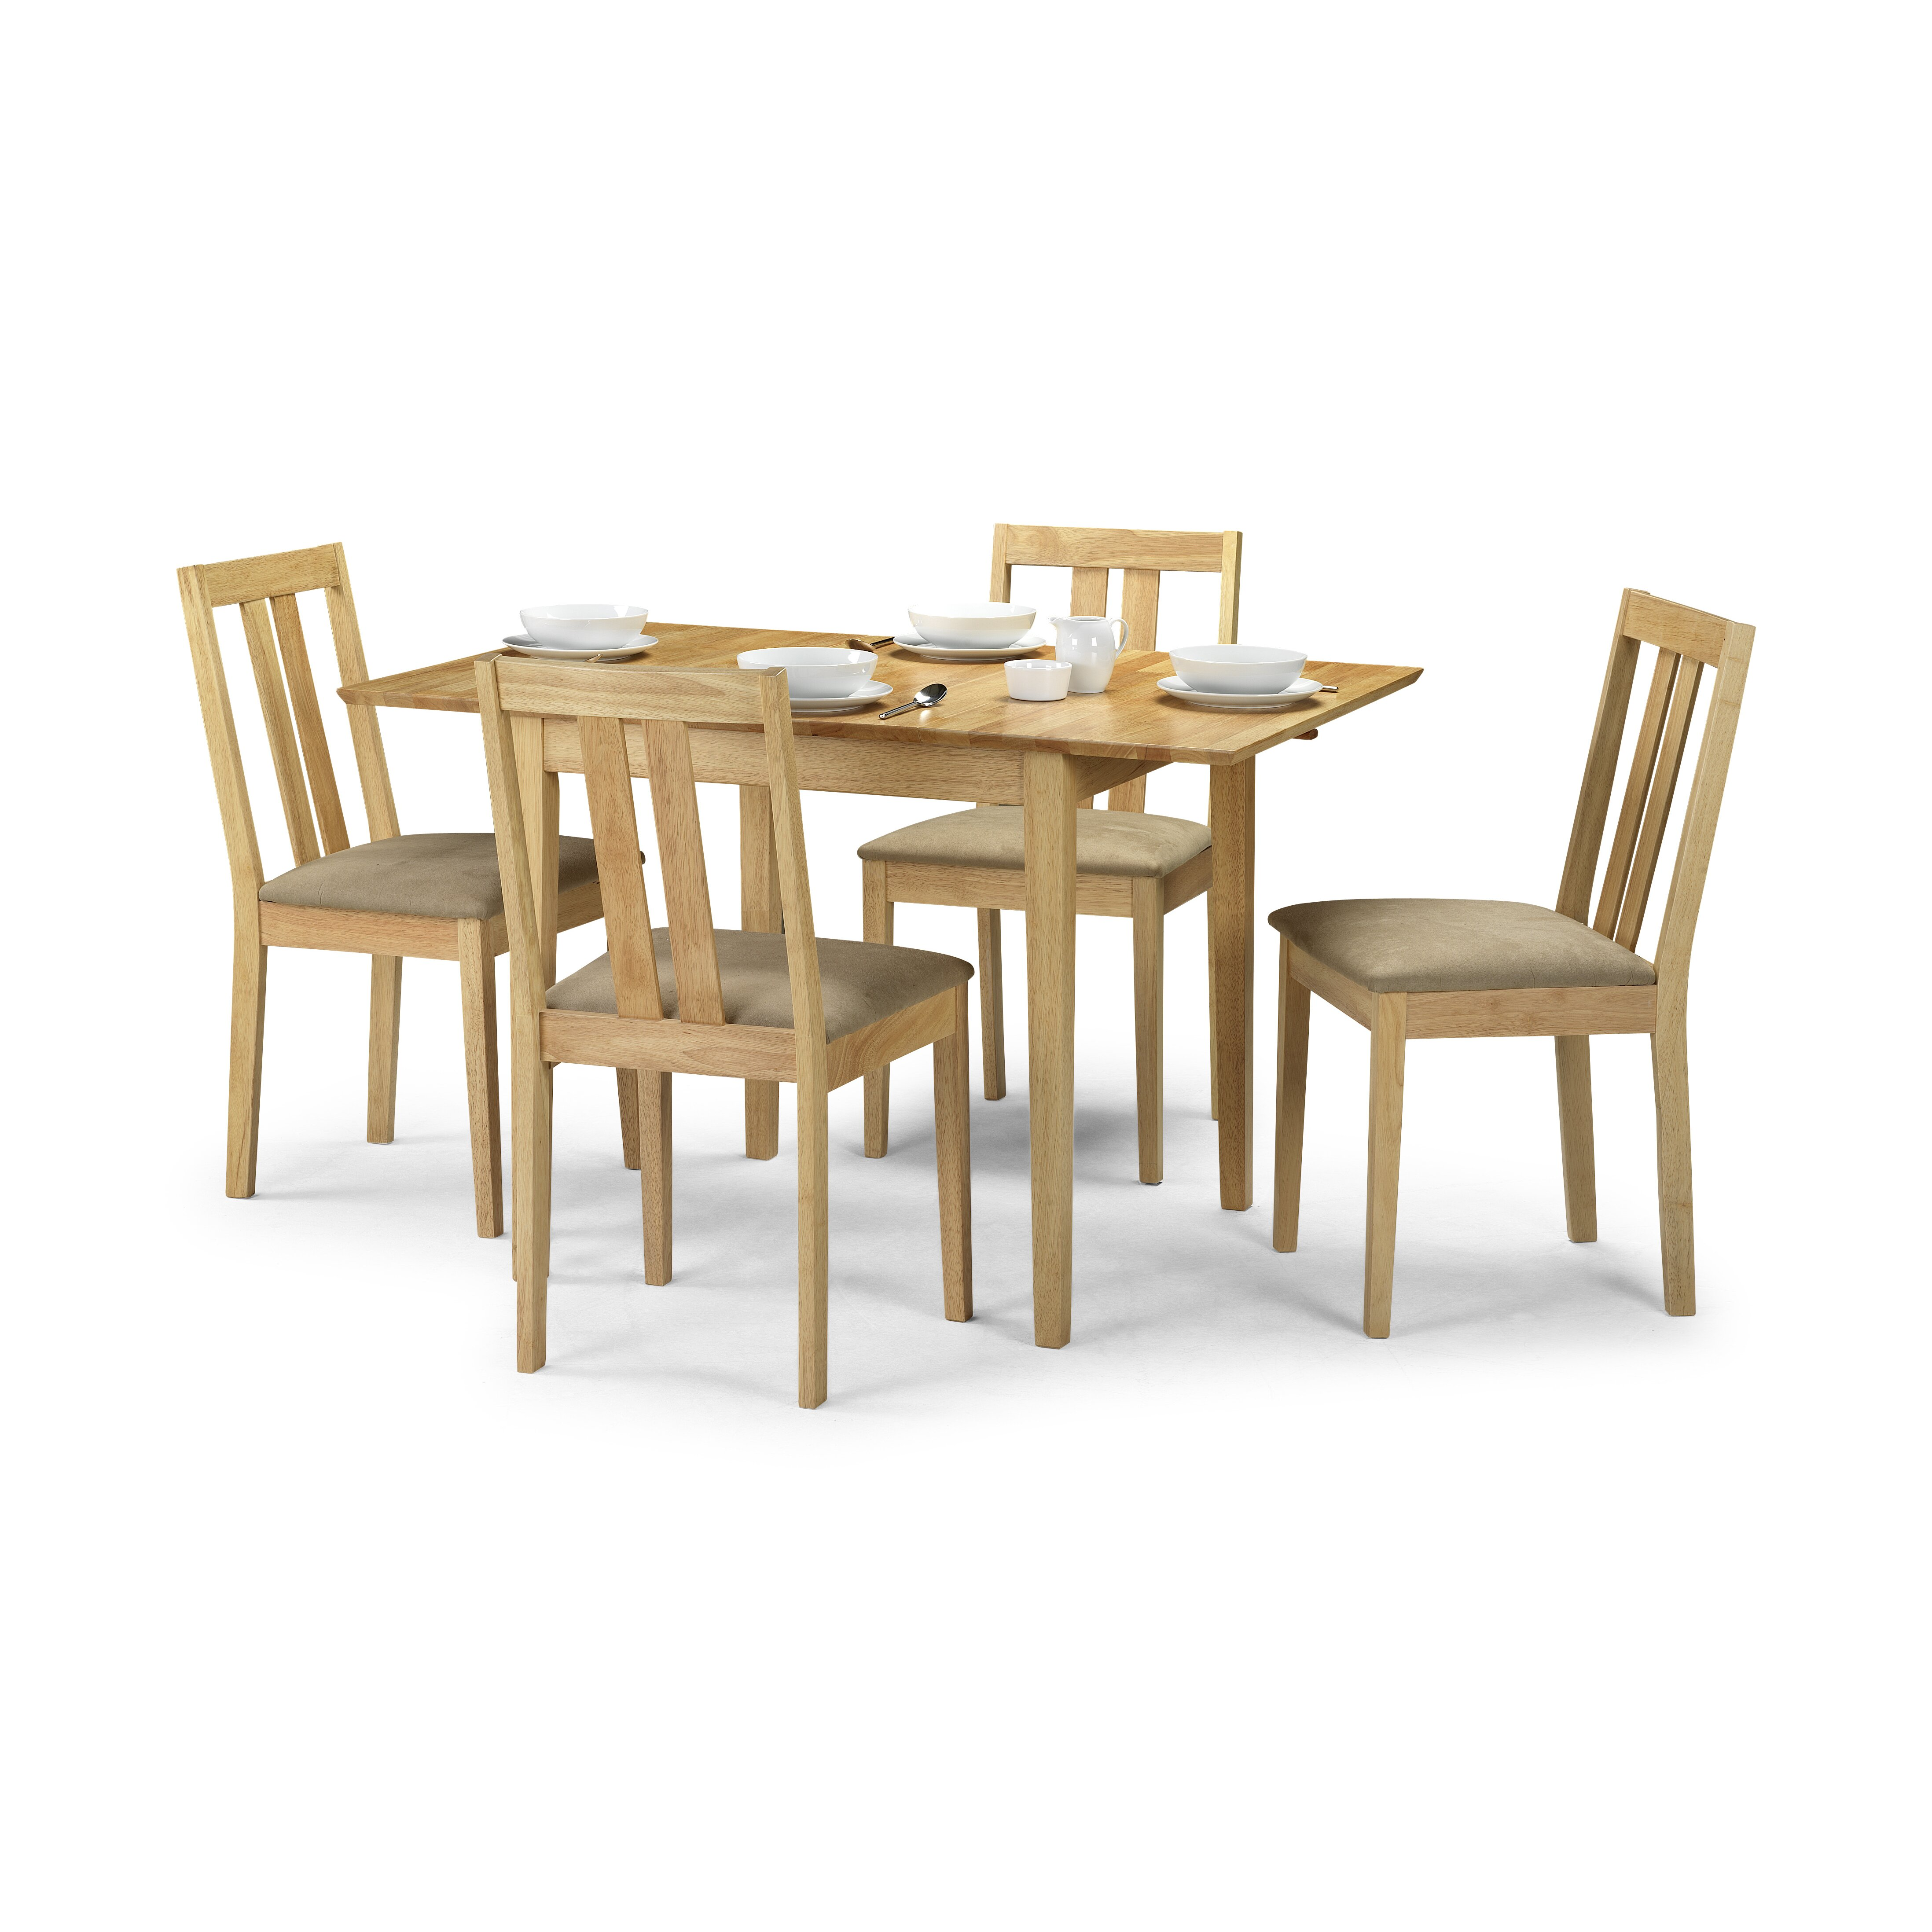 All Home Taberna Solid Oak Upholstered Dining Chair